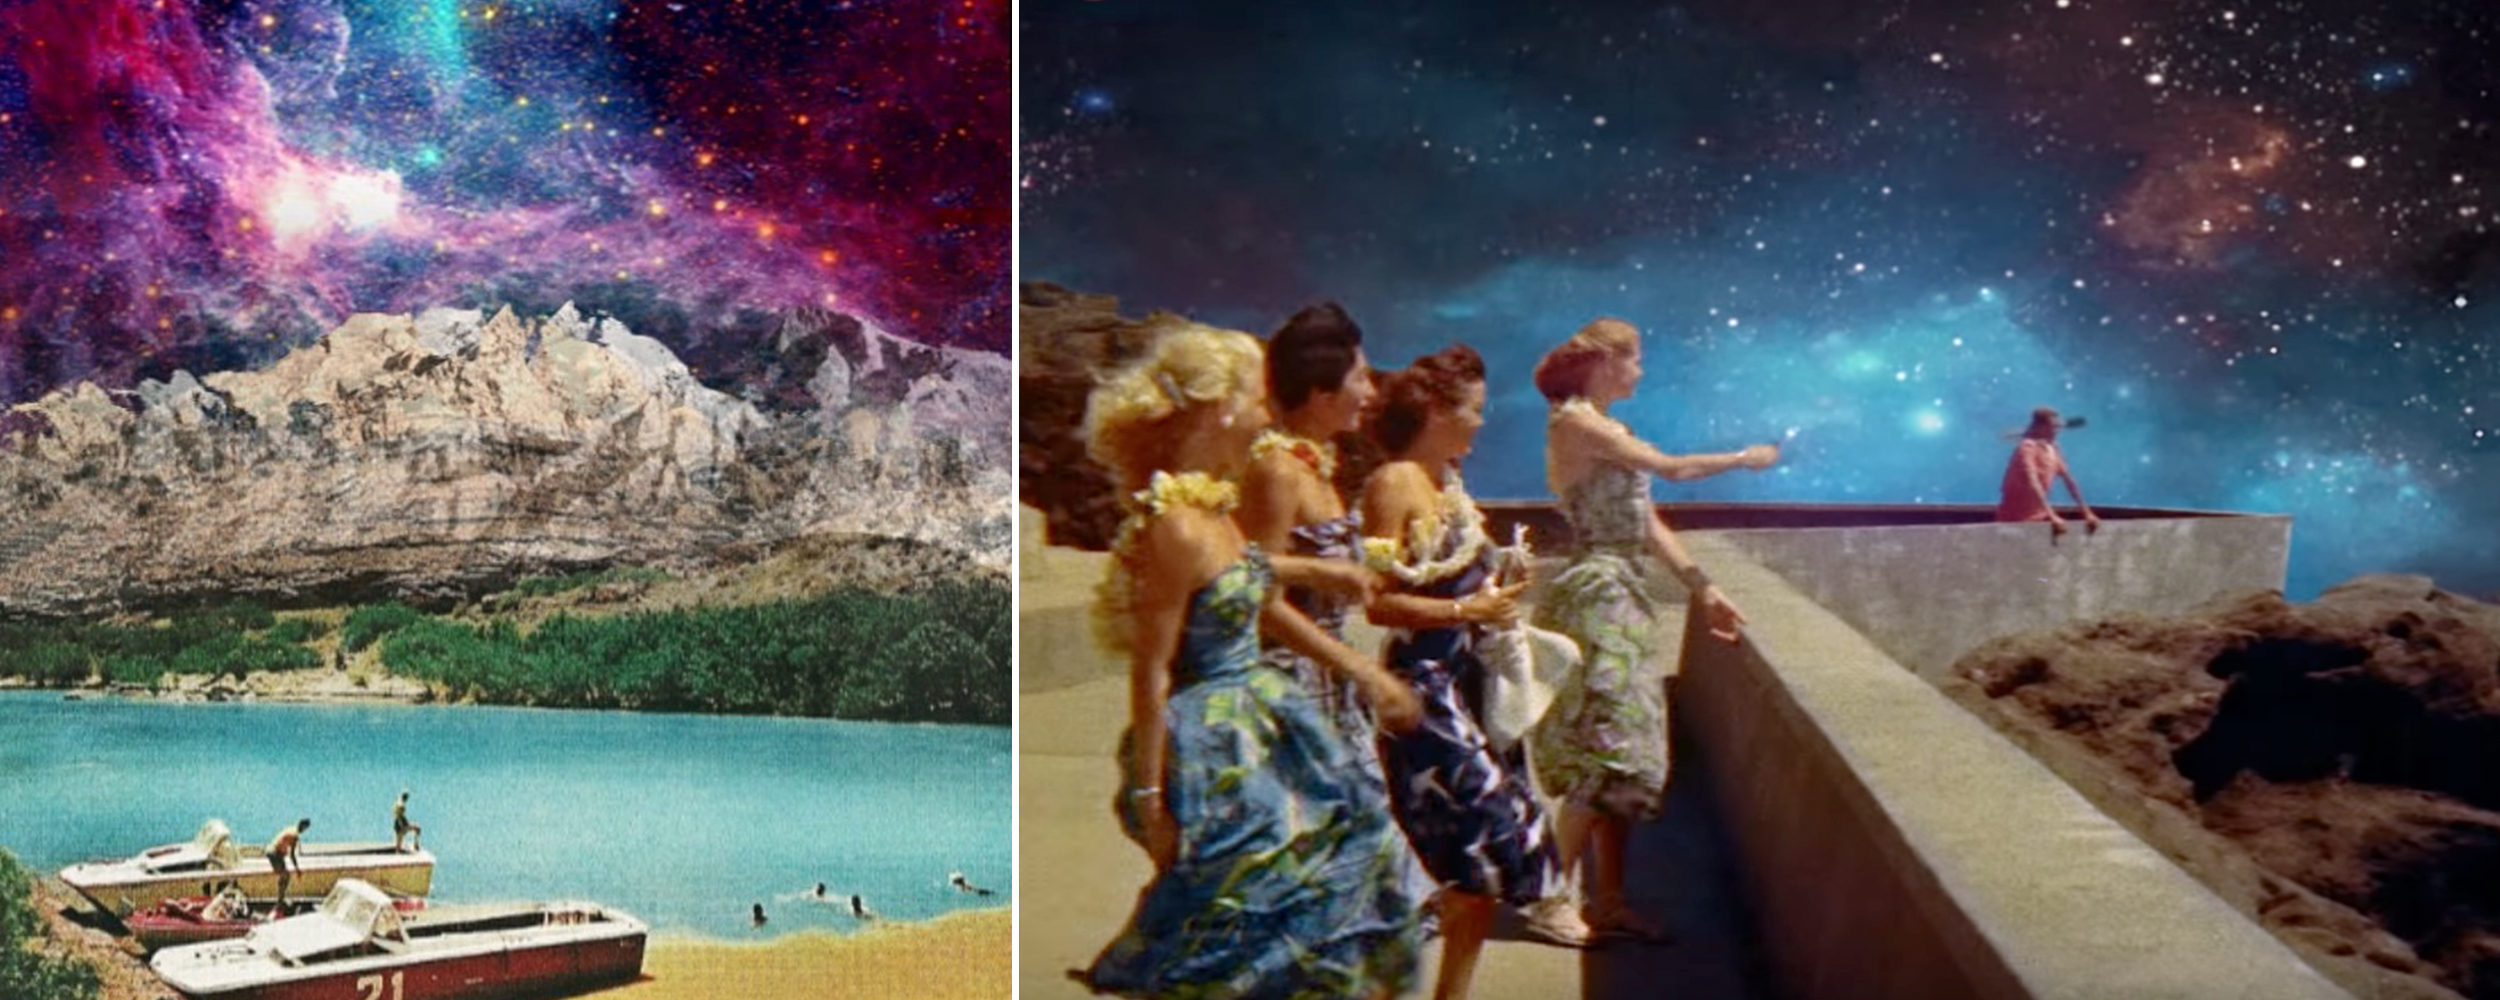 Left by @artoflol on PicsArt; Right from Coldplay's Up & Up music video